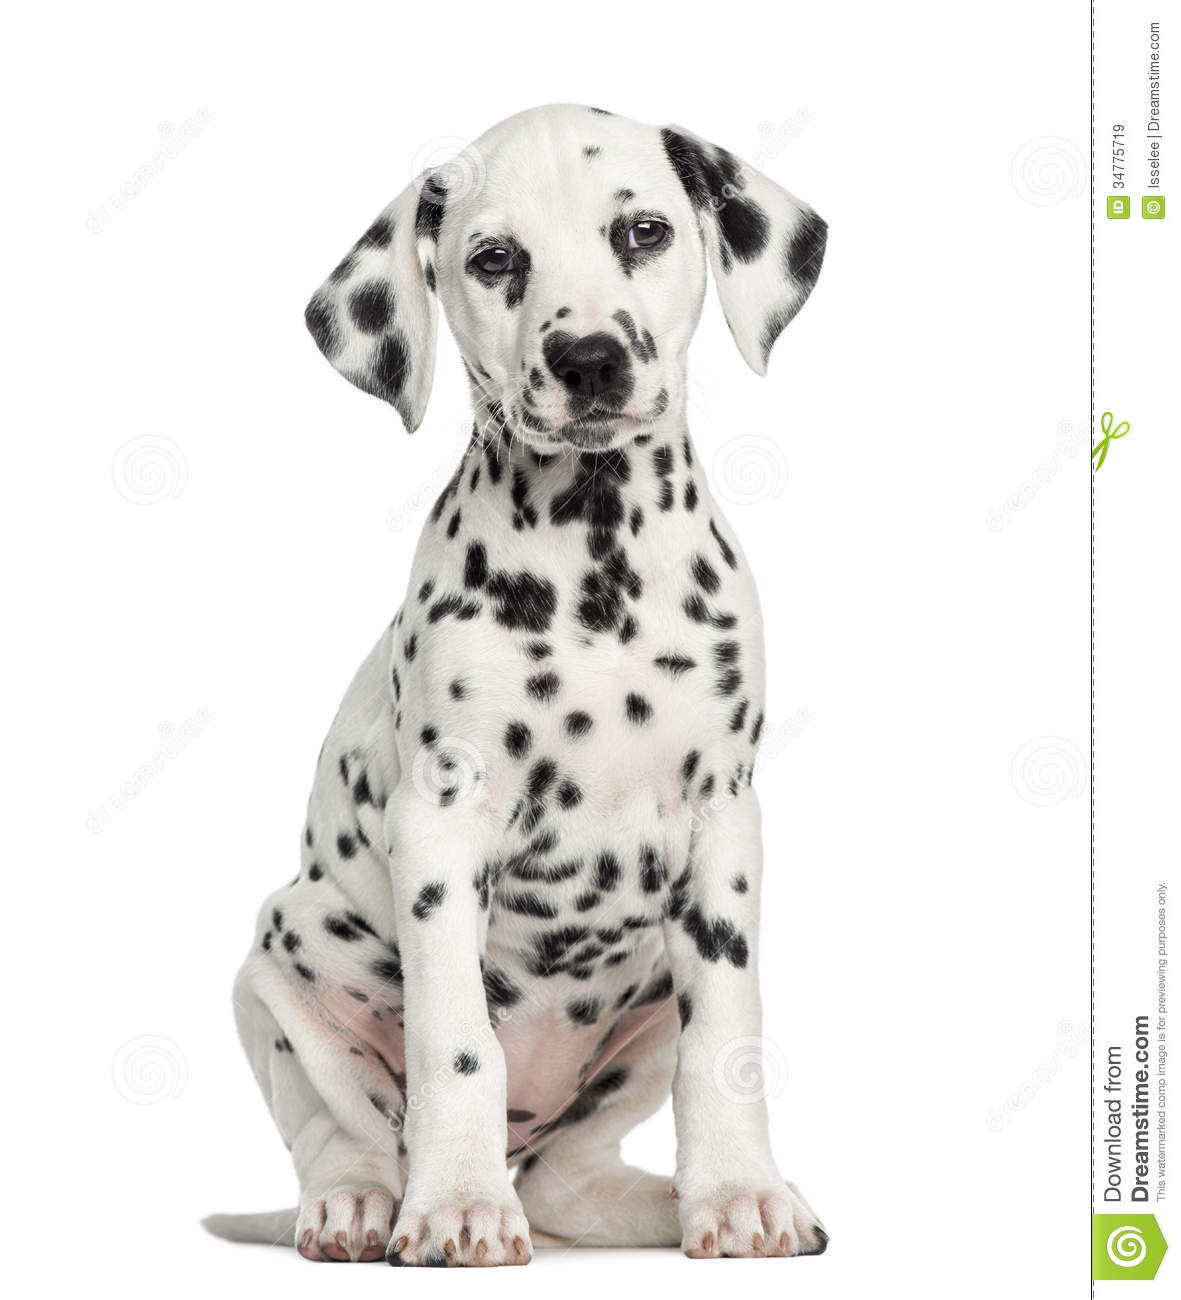 Where to find a dalmation puppy?